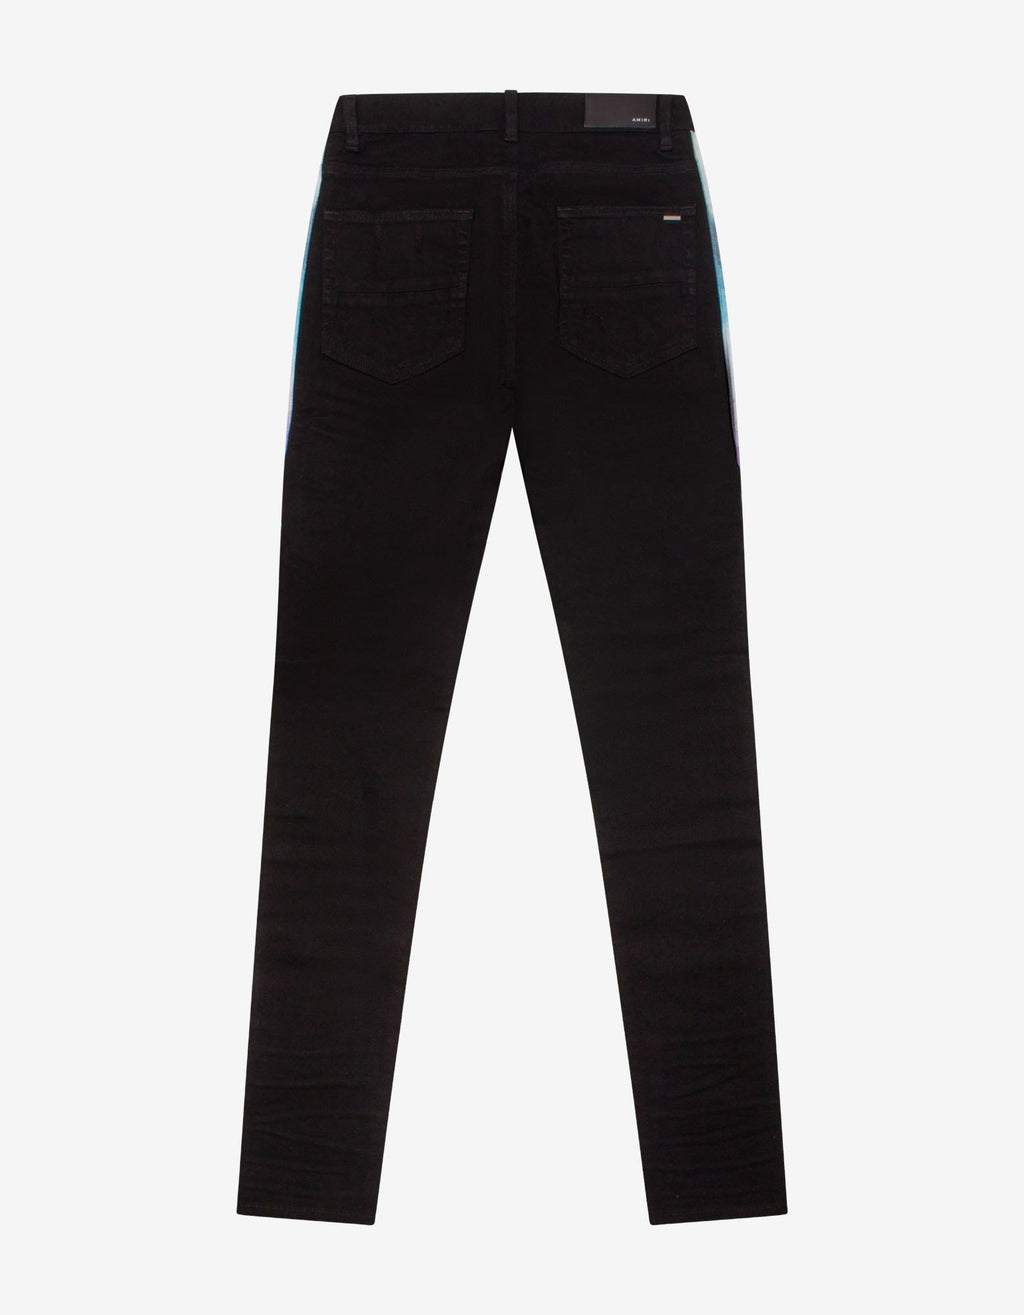 Watercolor Half Track Black Jeans -